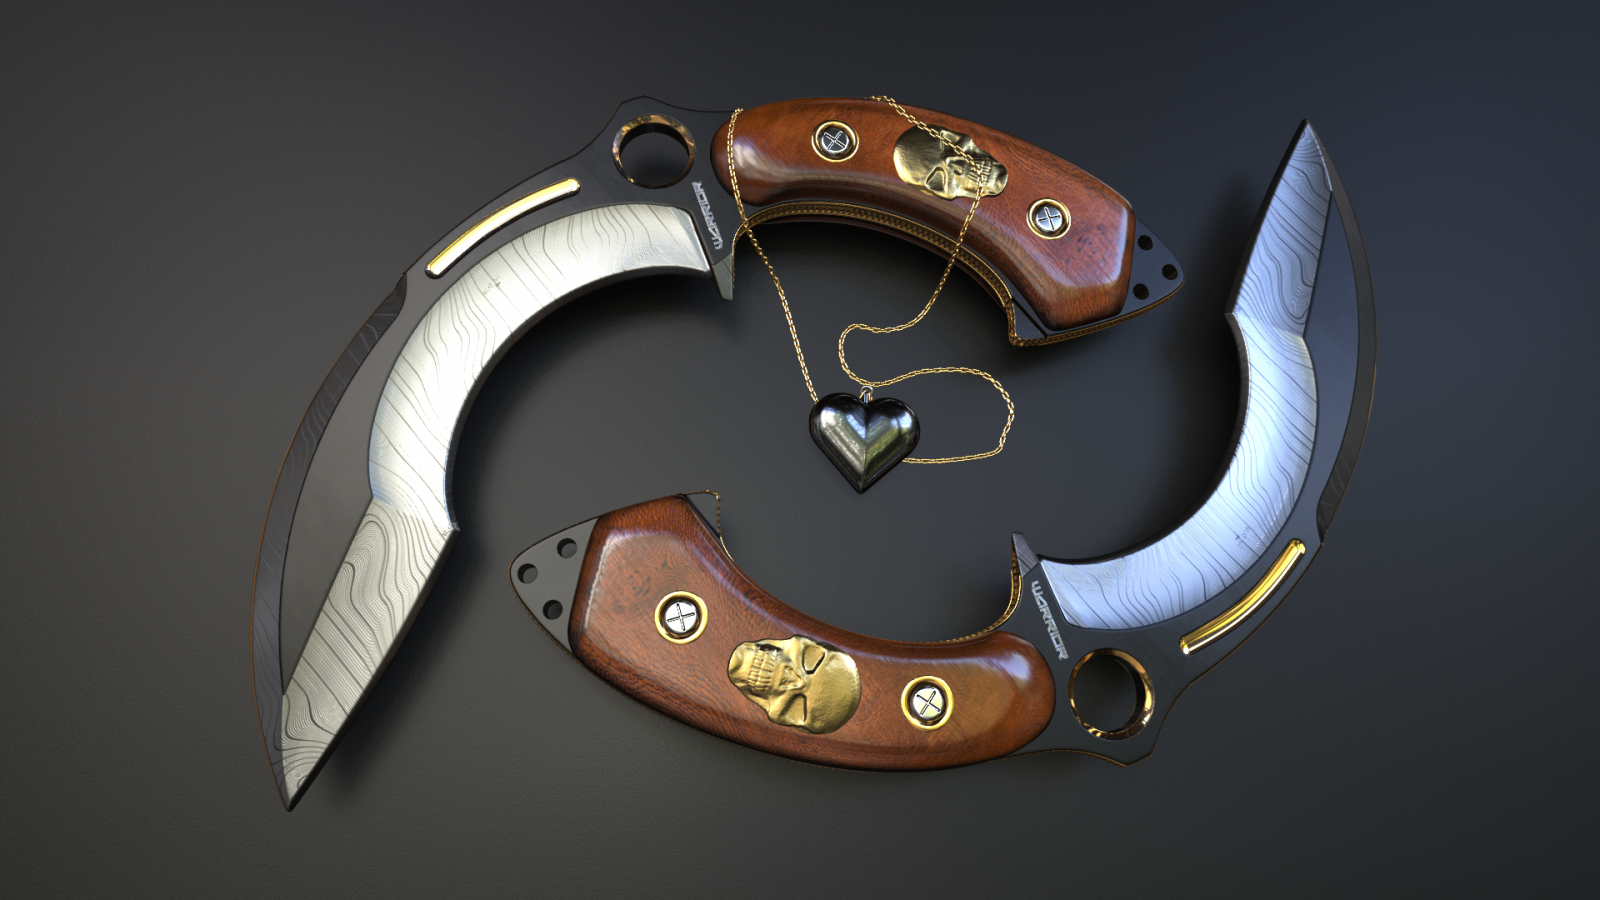 Knives - [Warrior]